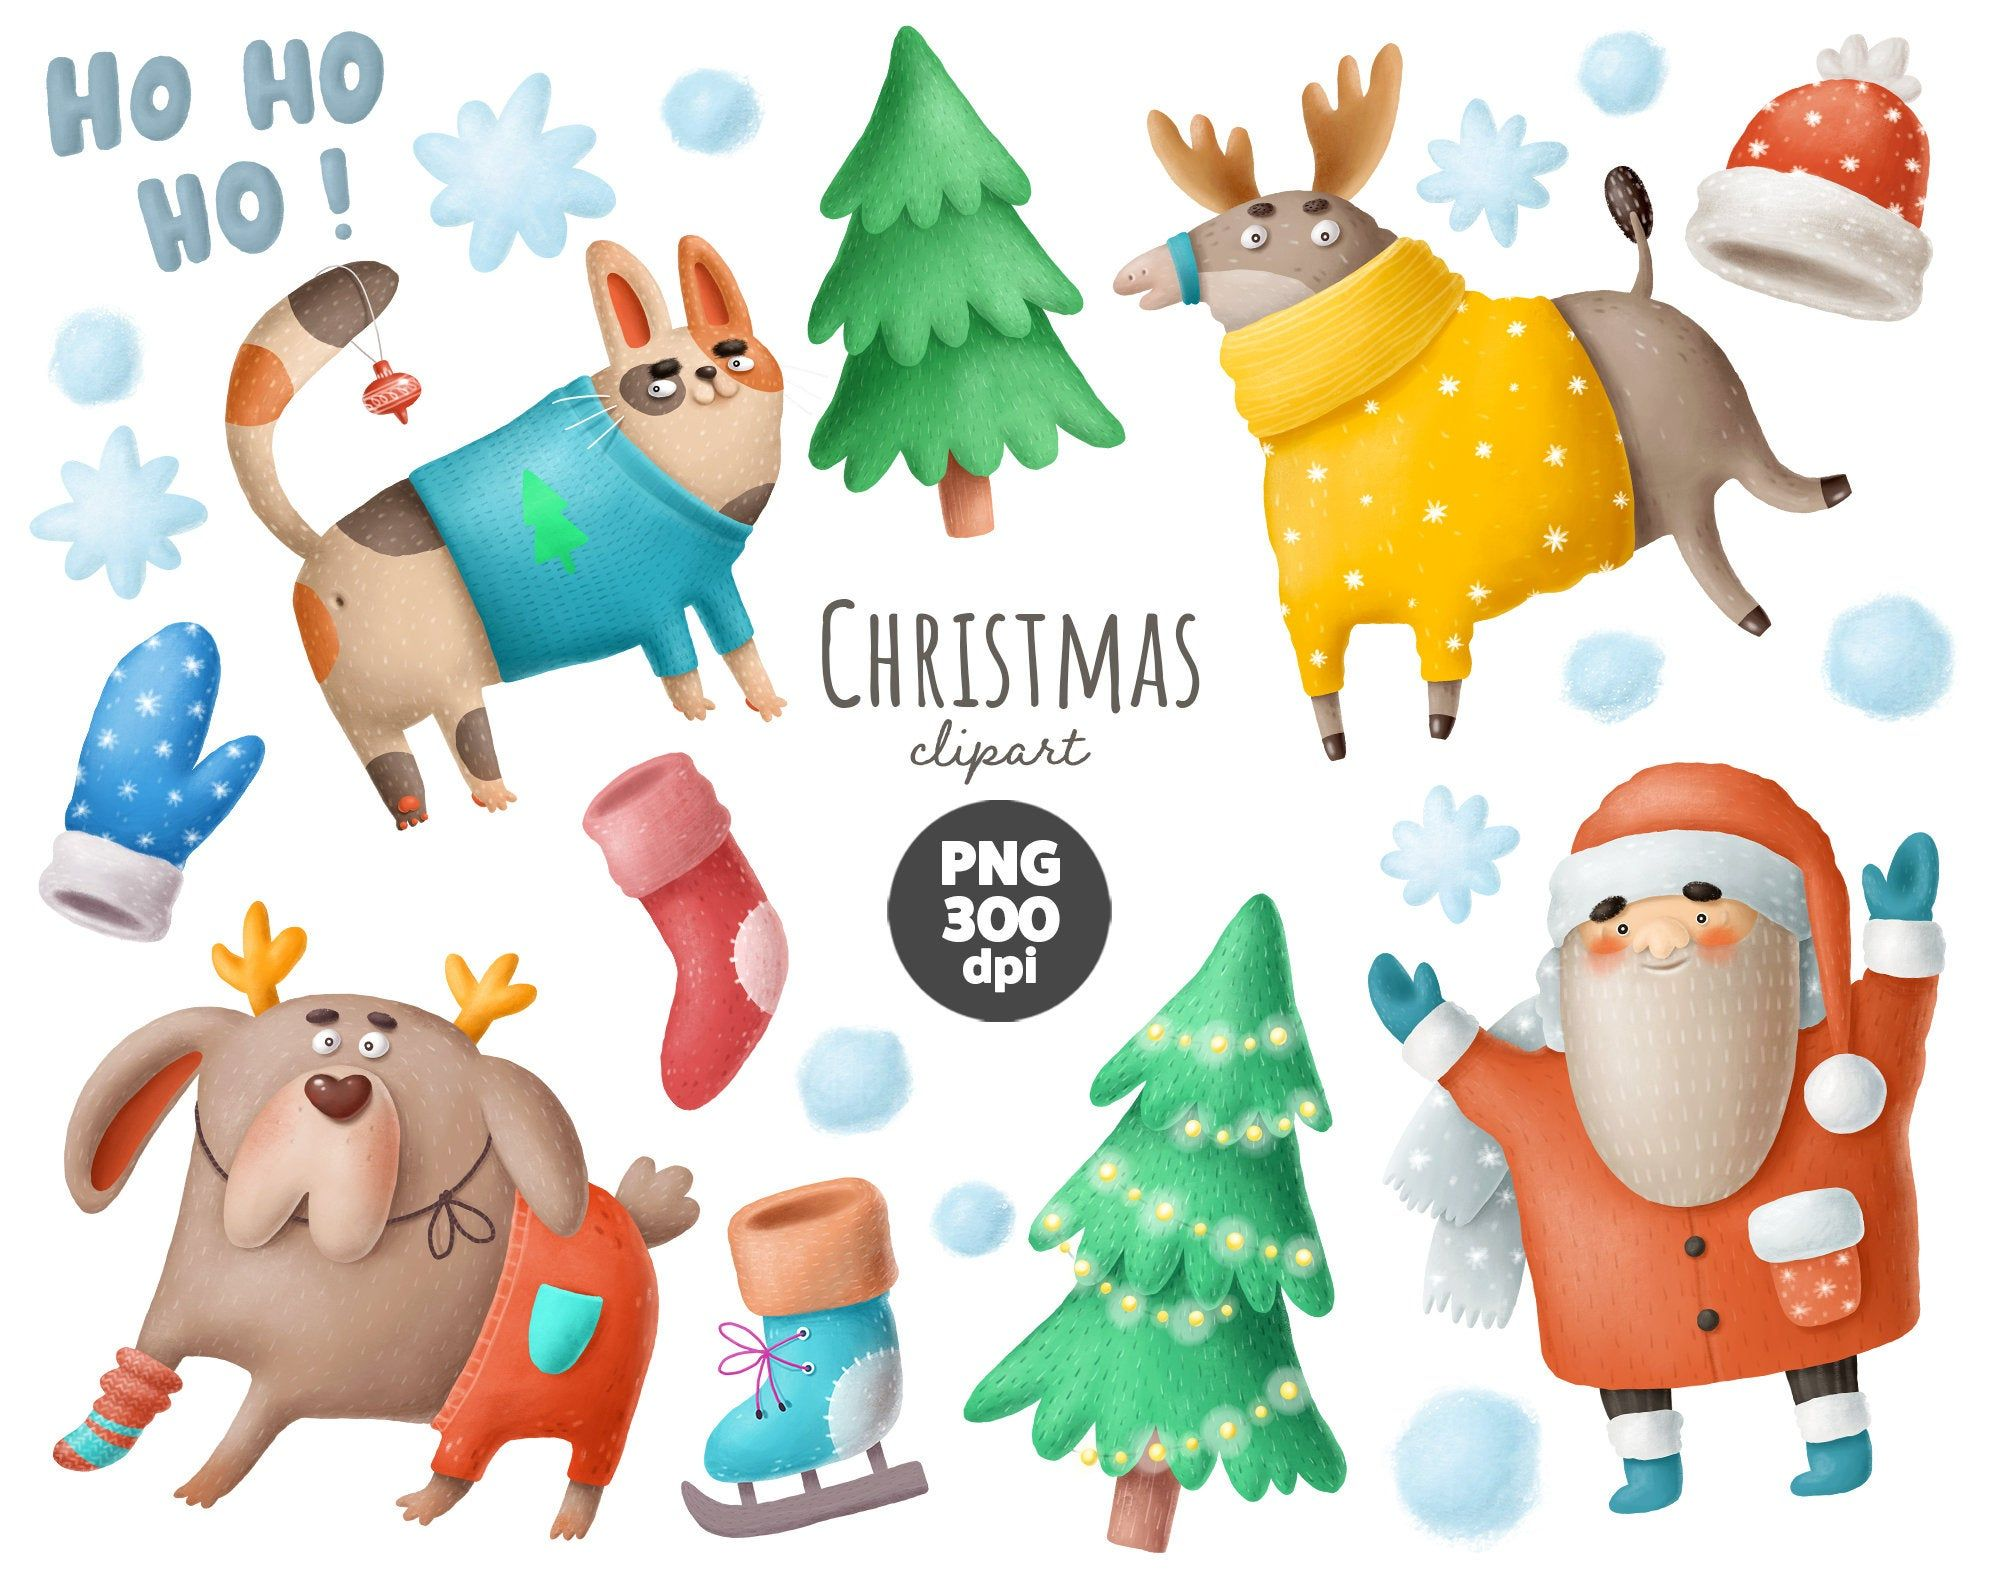 Pin By N K Camelopardus On Designer Bundles In 2021 Christmas Clipart Clip Art Christmas Tree Clipart